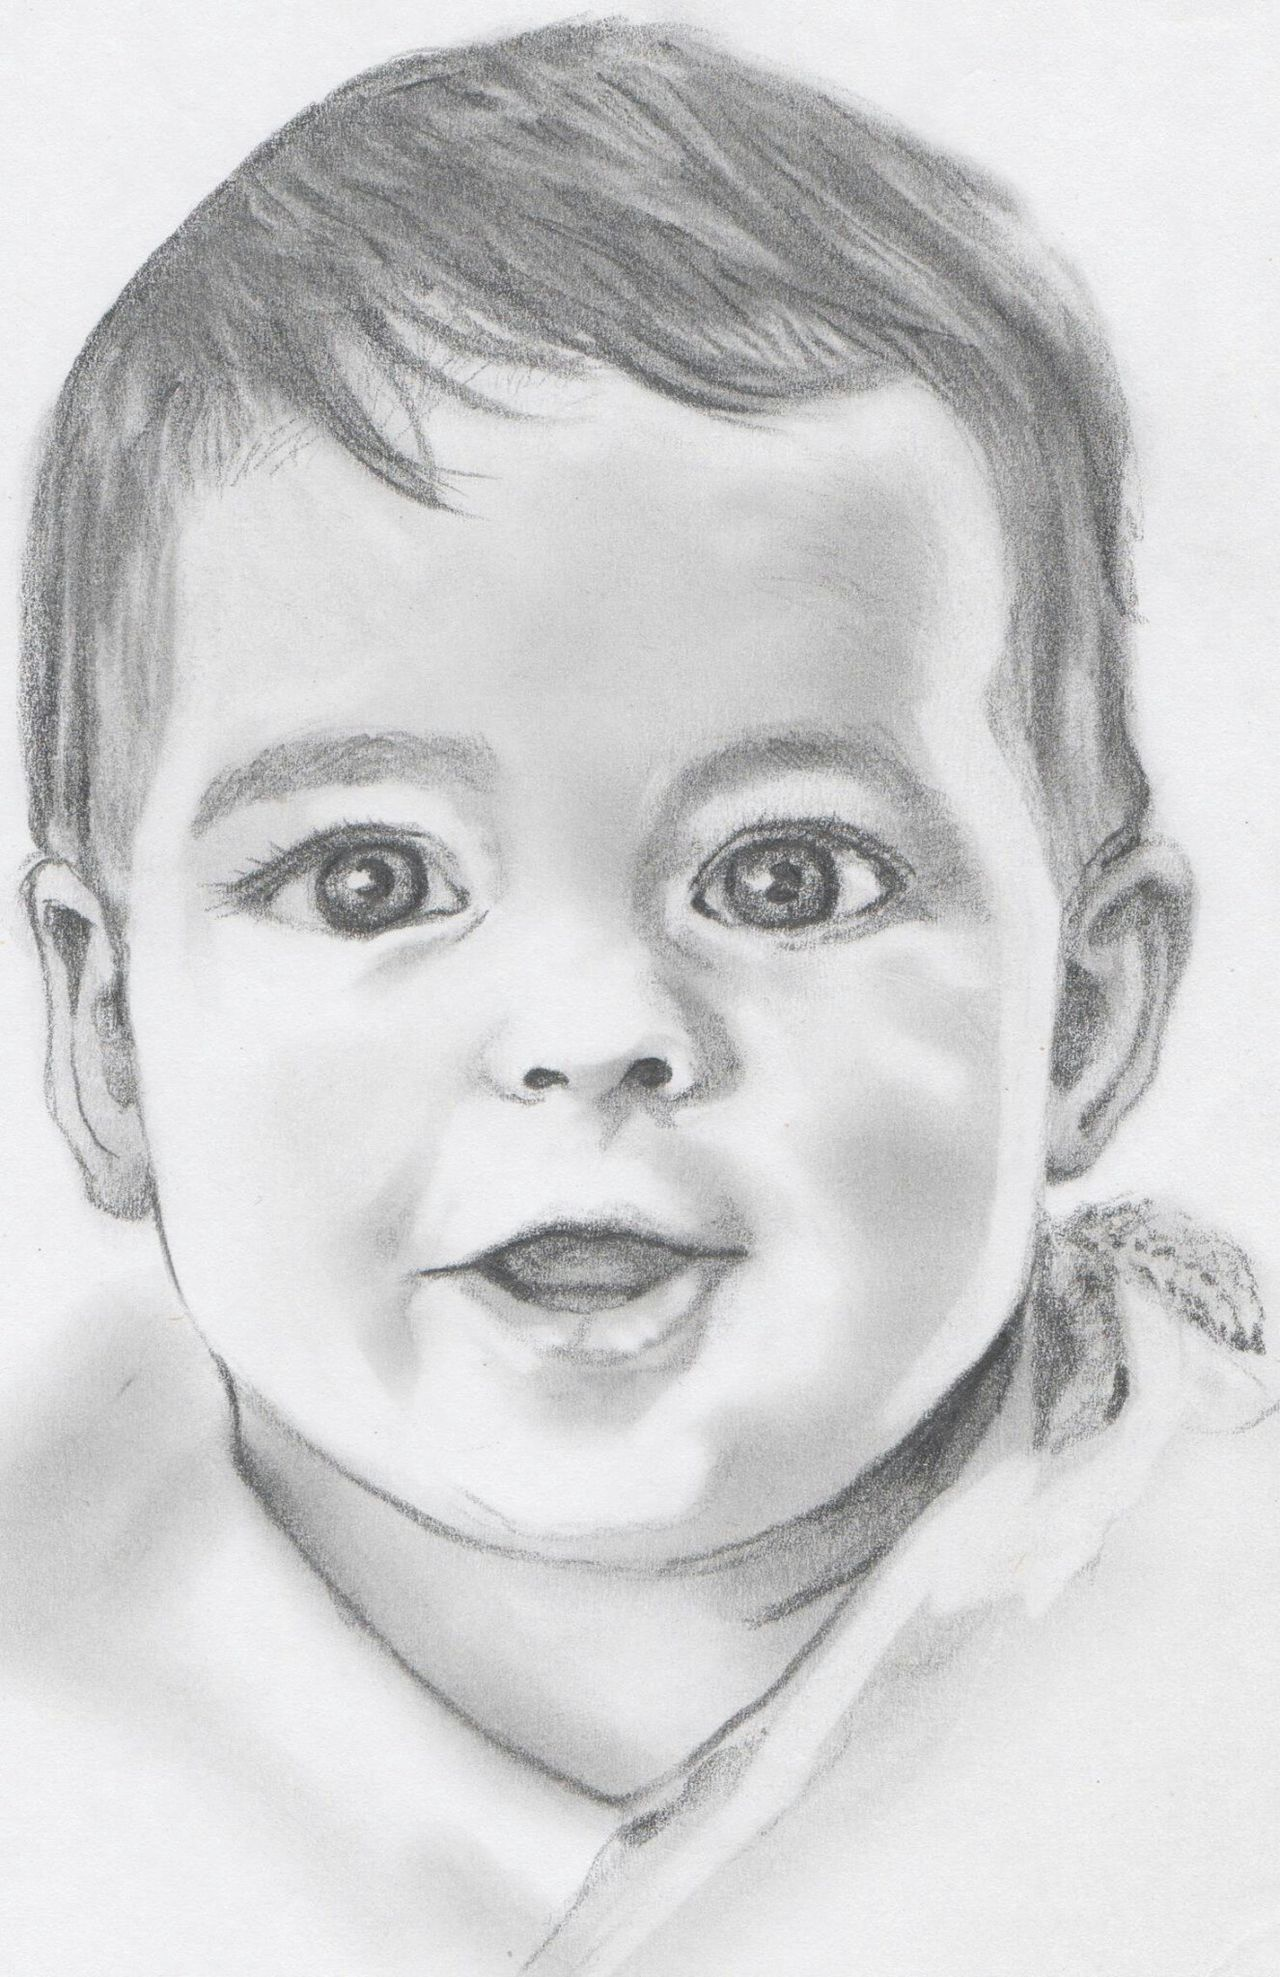 Retrato Grafito Portrait Lapiz Art, Drawing, Creativity Boceto Retrato Dibujoartistico Dibujo A Lapiz Dibujo Children Baby Boy